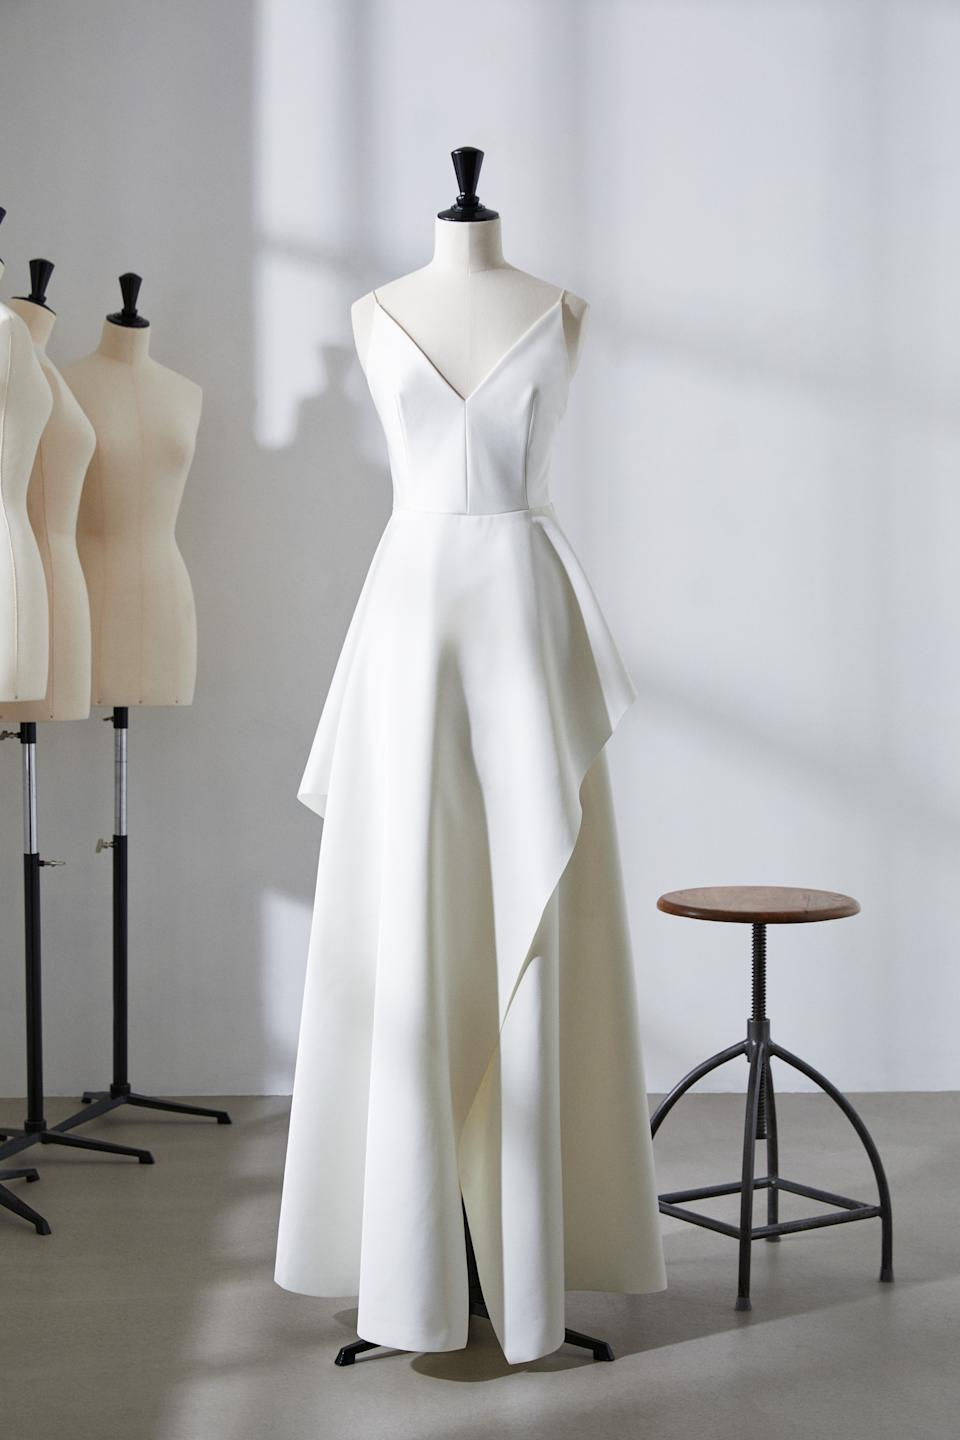 A first look collection showcases two wedding dresses available to rent. [Photo: H&M]